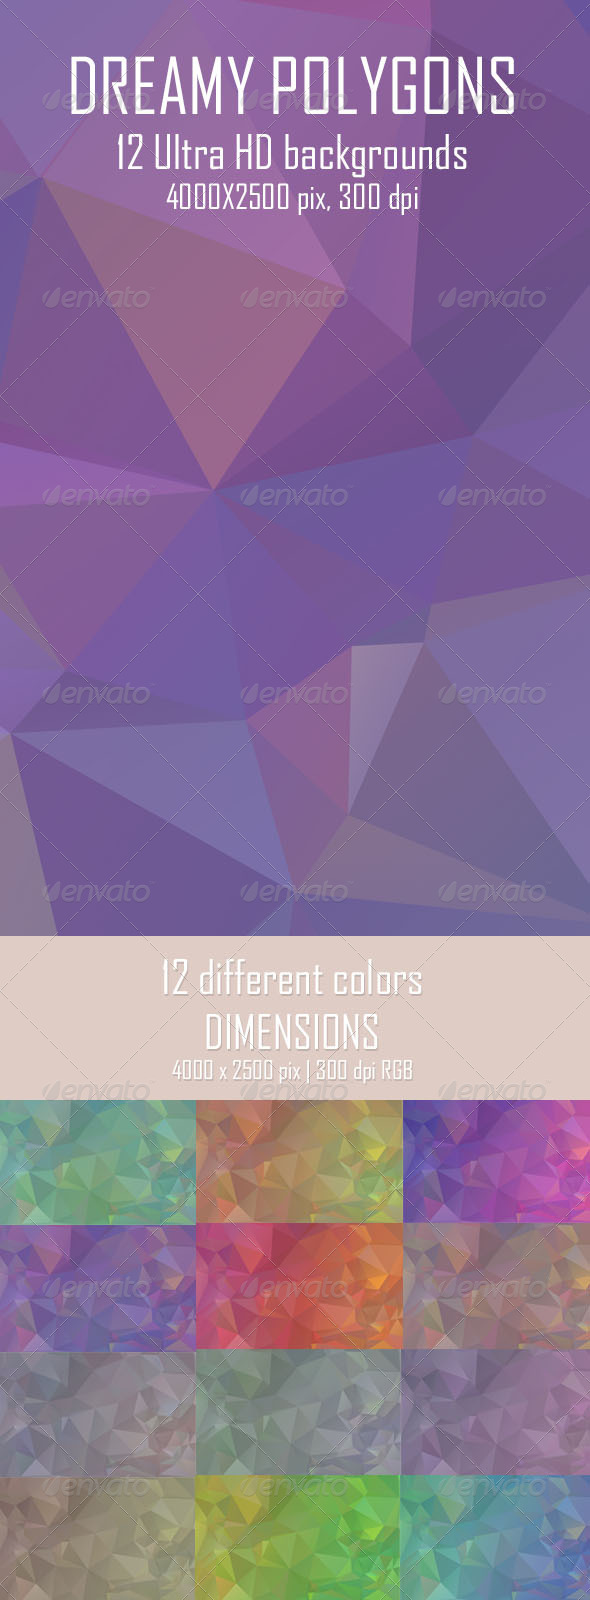 GraphicRiver Dreamy Polygon Backgrounds 6725357